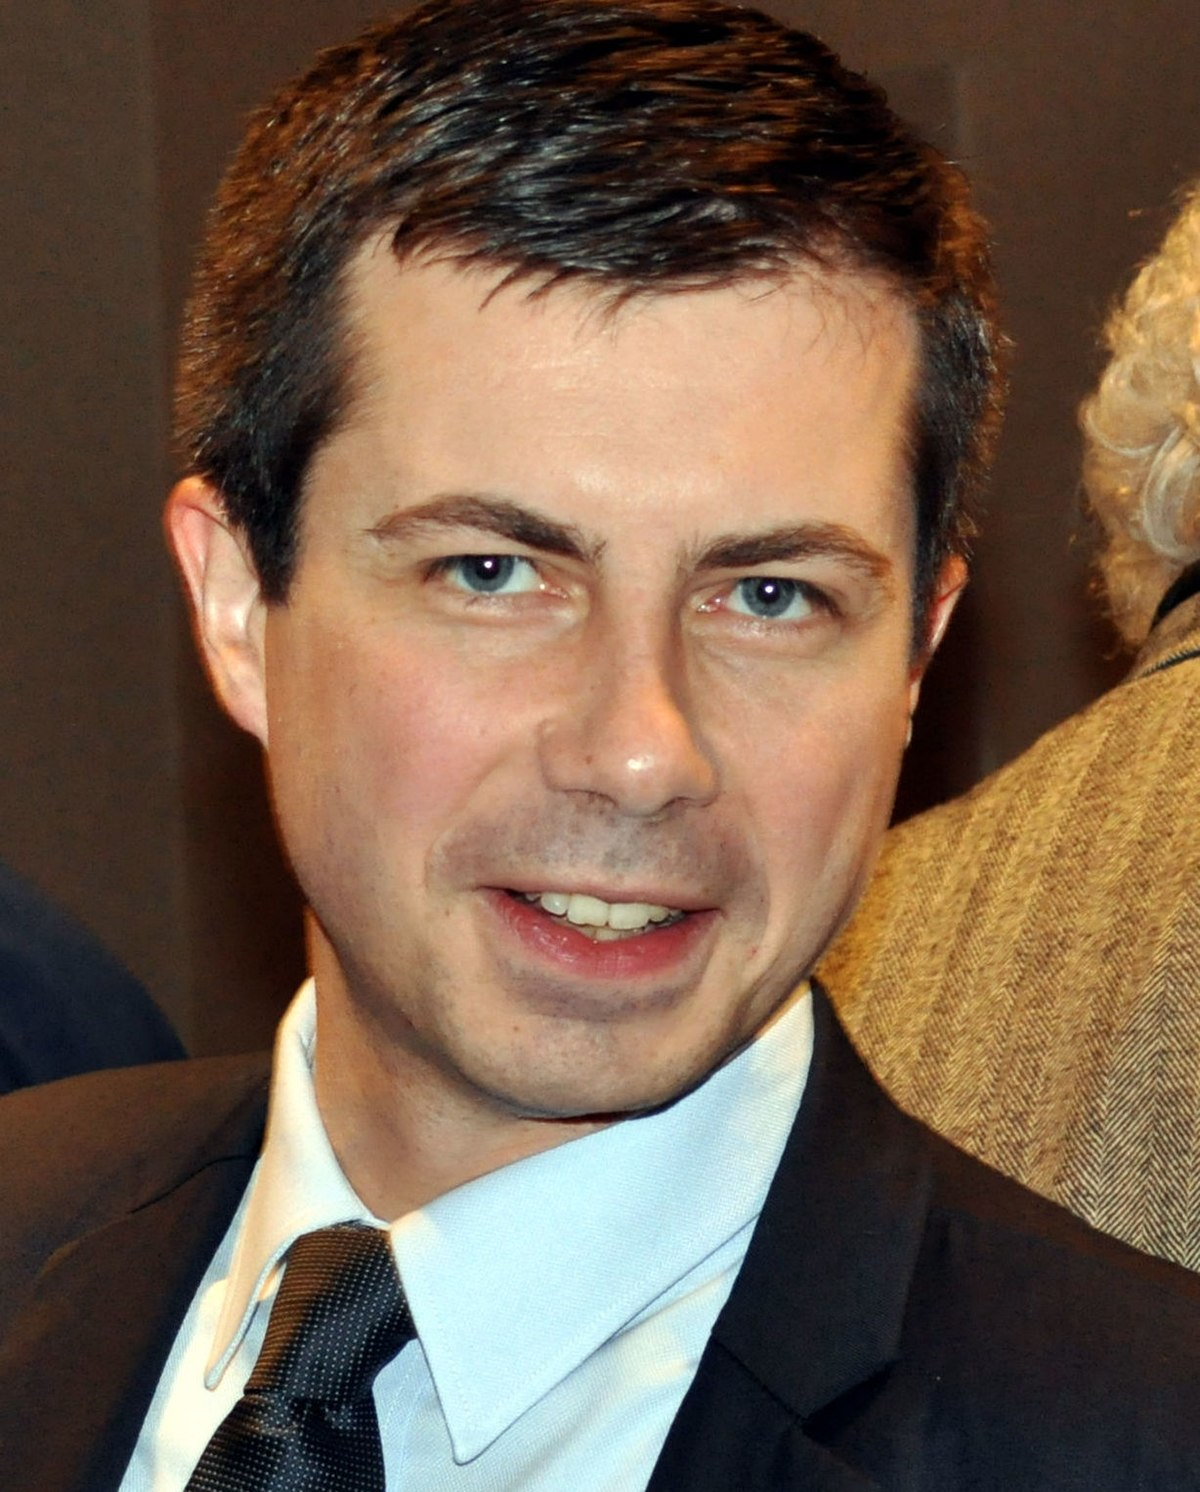 Pete Buttigieg DNC Winter Meet 0363 (32330685174) (cropped).jpg